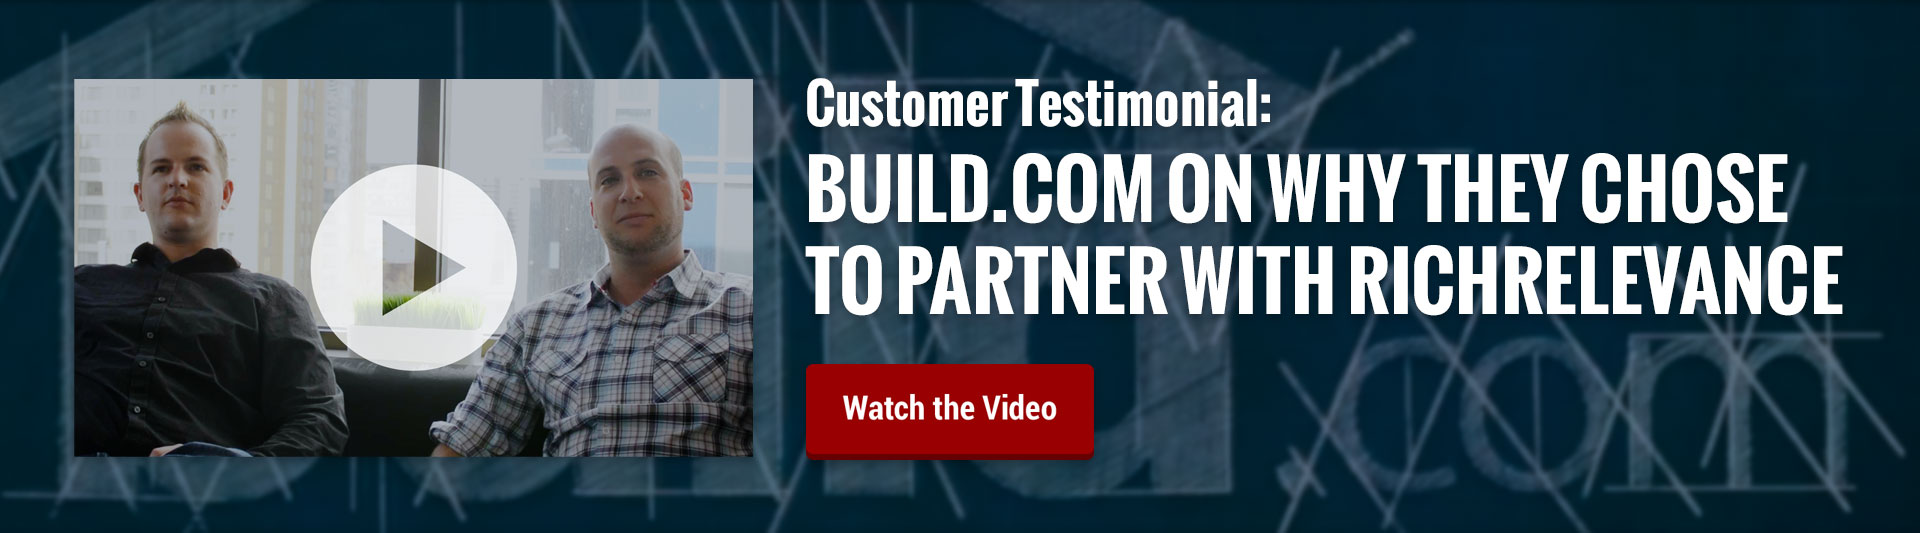 Build.com Customer Testimonial